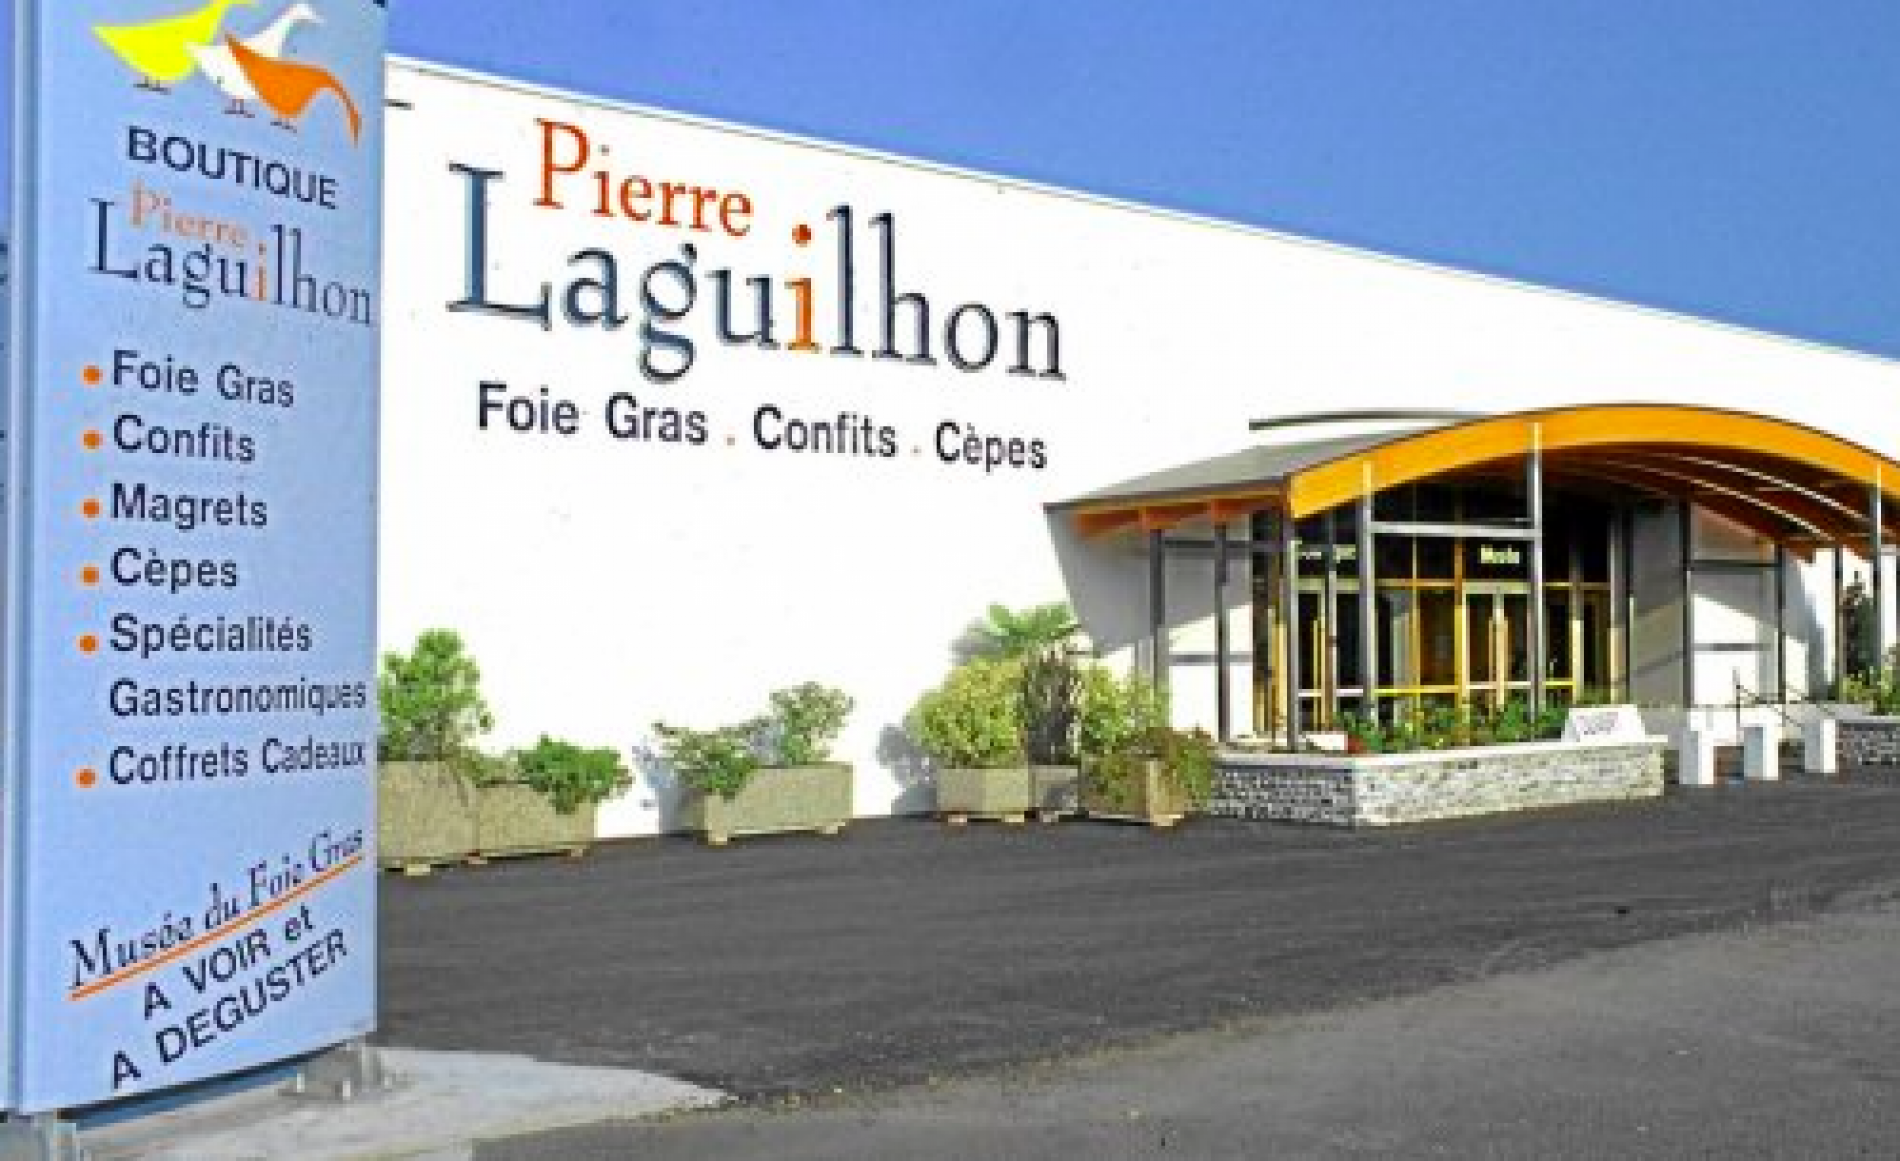 Laguilhon establishment